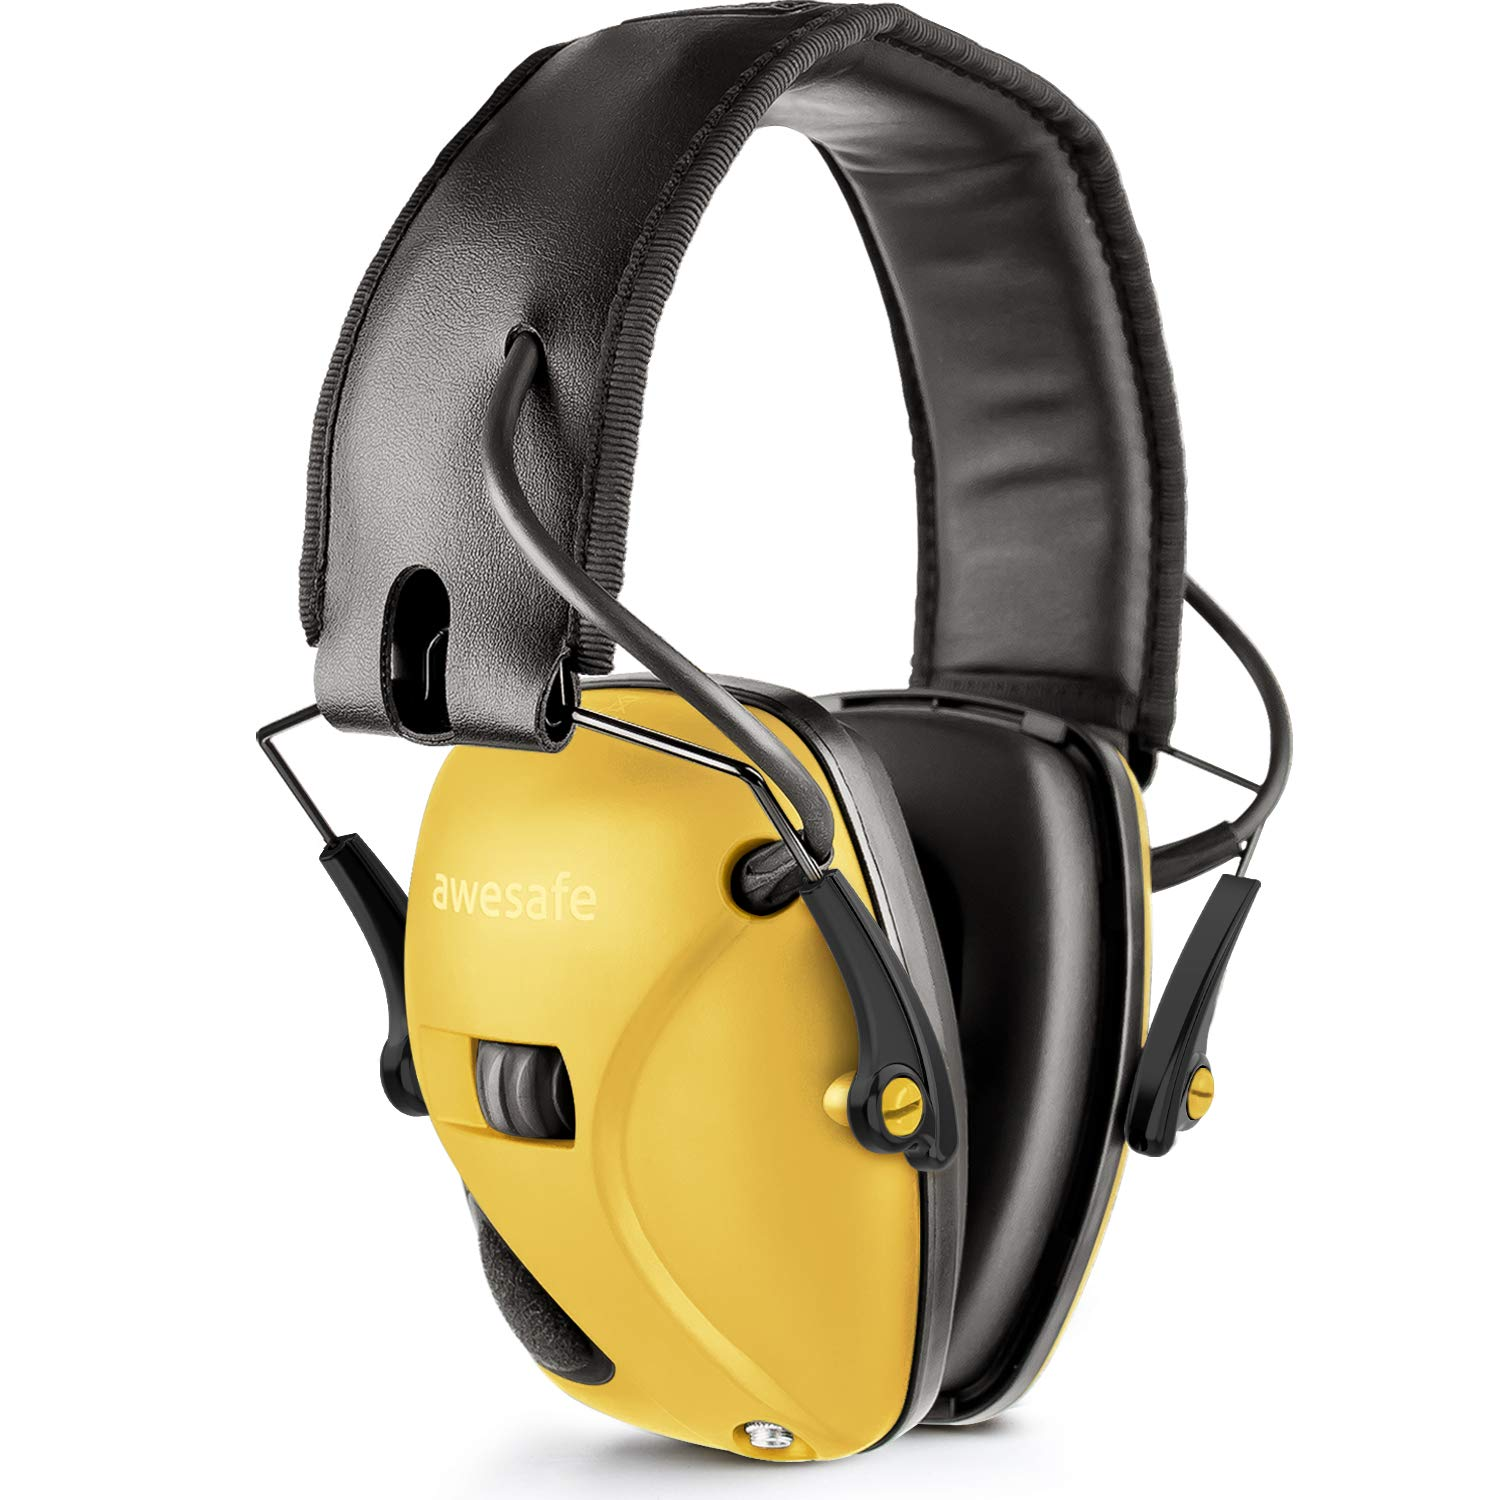 Awesafe Electronic Shooting Earmuff, GF01 Noise Reduction Sound Amplification Electronic Safety Ear Muffs, Ear Protection, NRR 22 dB, Ideal for Shooting and Hunting, Yellow … by awesafe   (Image #1)